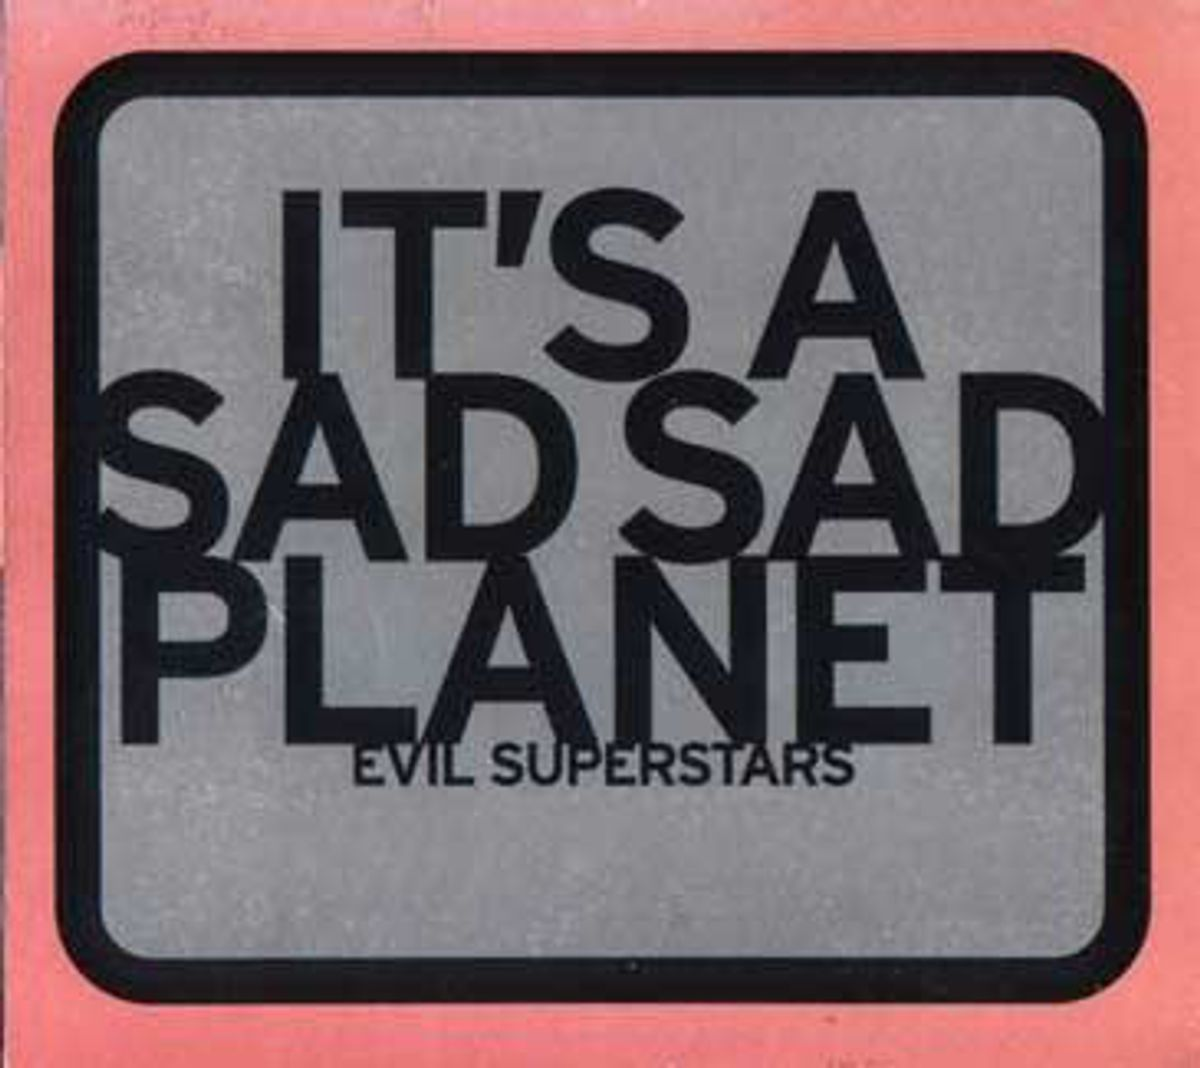 #Maurotanië - Evil Superstars - It's A Sad Sad Planet (1998)